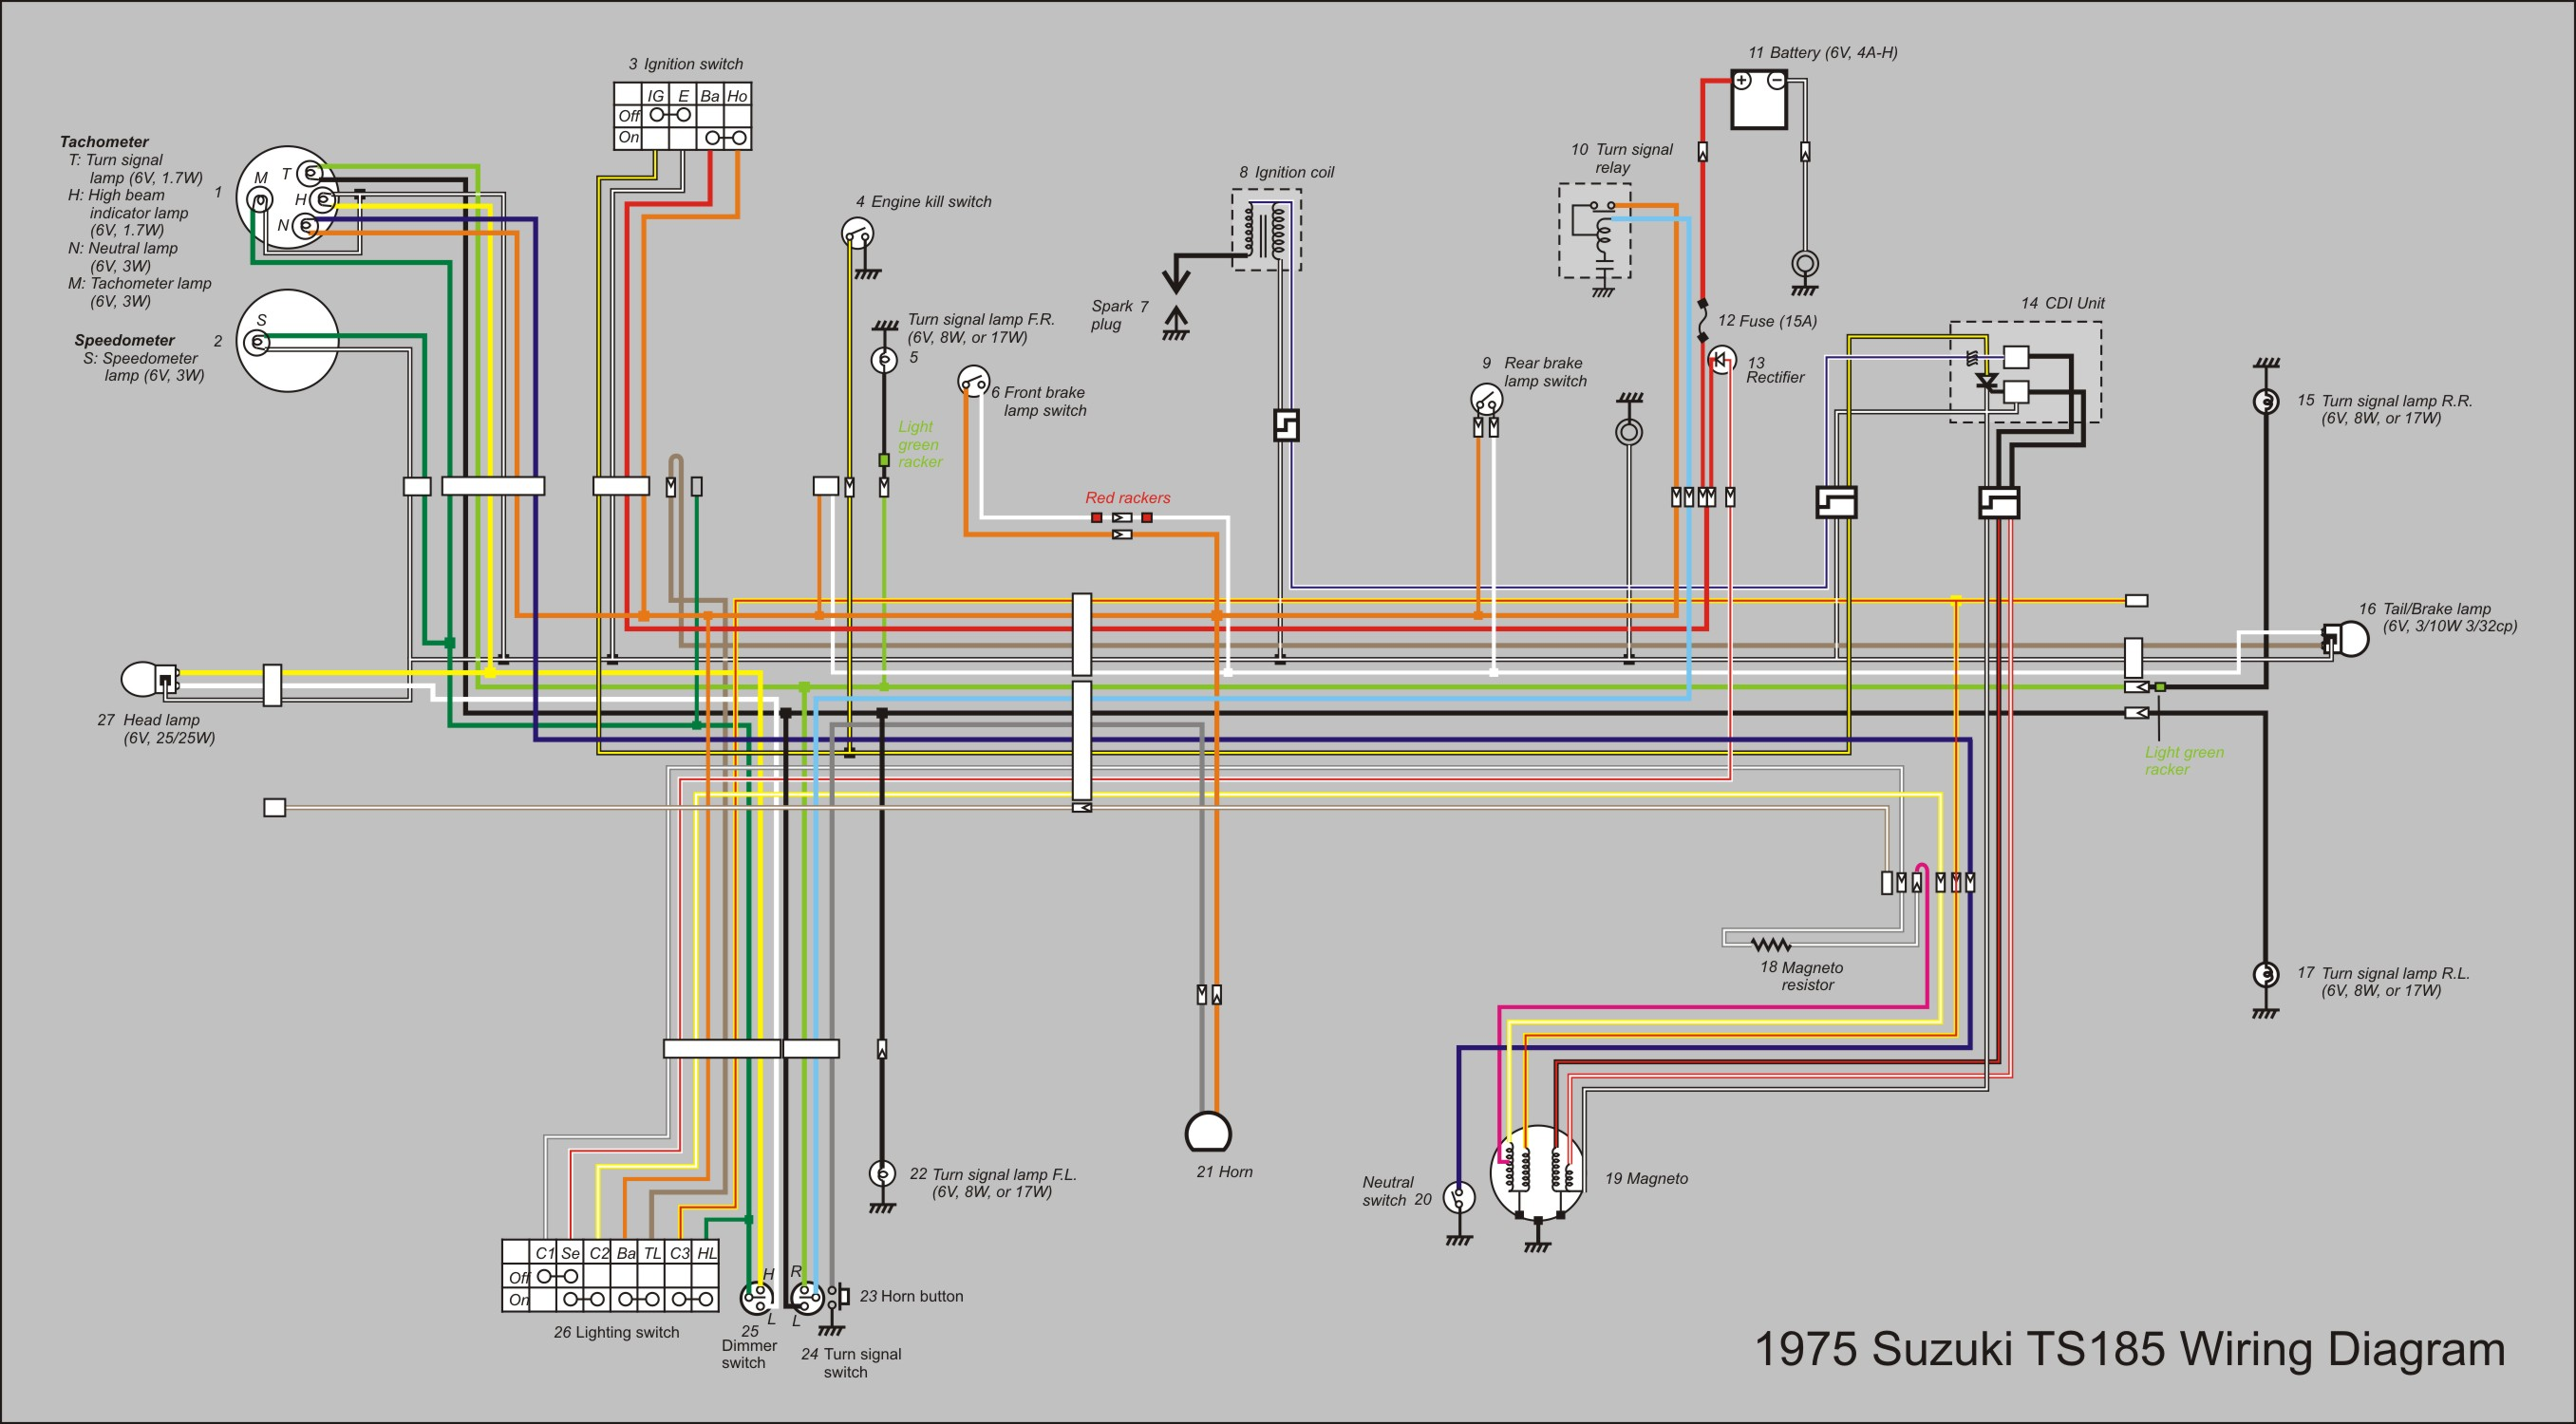 file ts185 wiring diagram new jpg wikimedia commonsfile ts185 wiring diagram new jpg